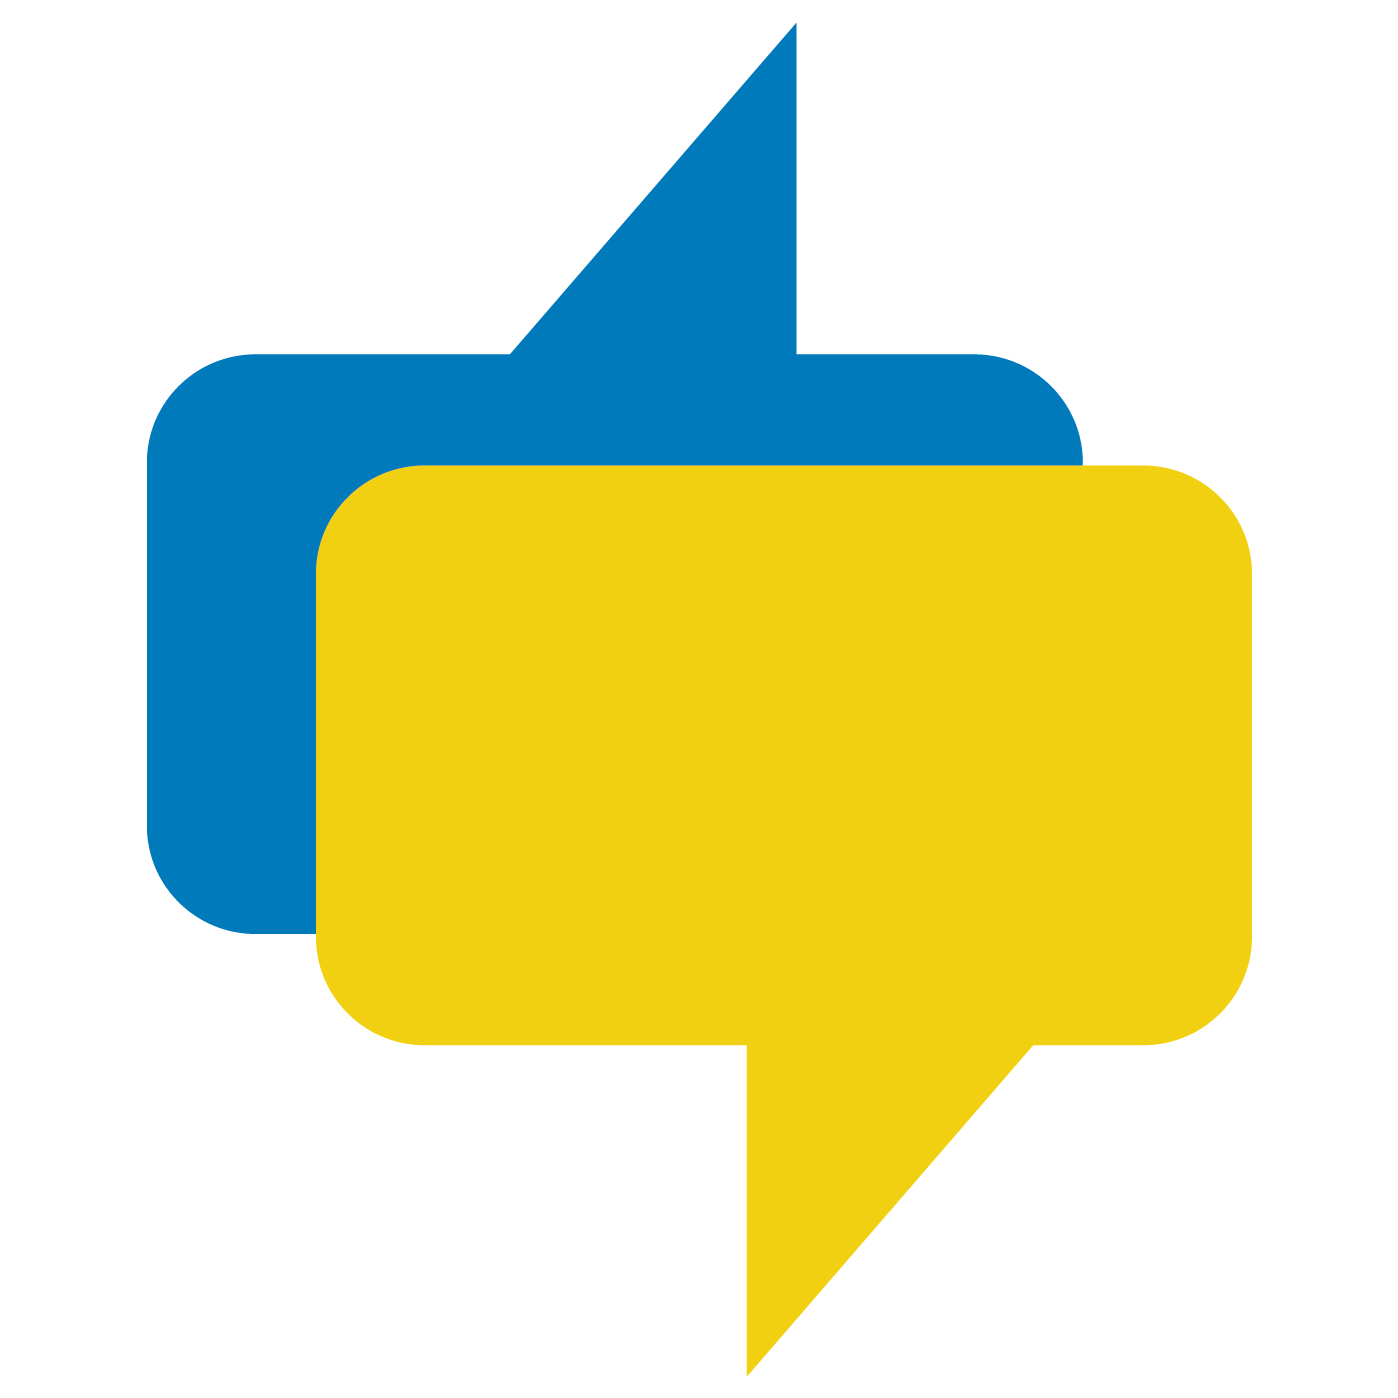 Free resources to learn Ukrainian